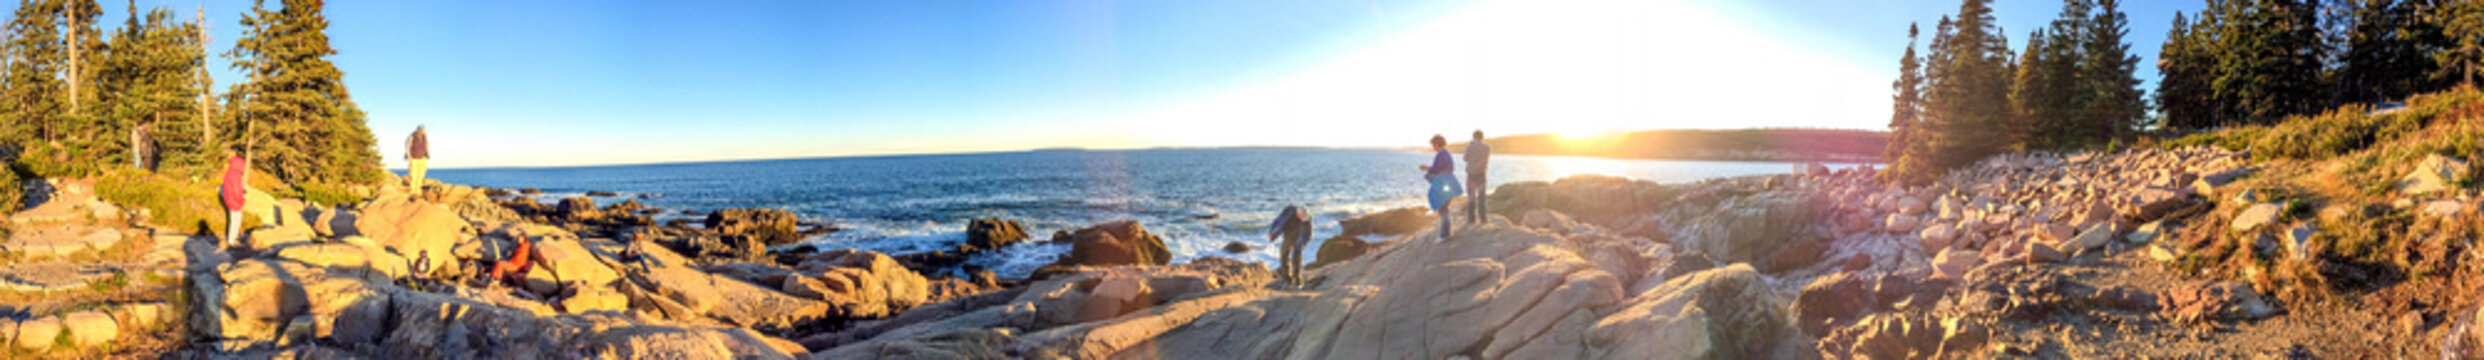 ACADIA NP, MAINE - OCTOBER 2015: Tourists visit national park. Acadia is a major destination in foliage season